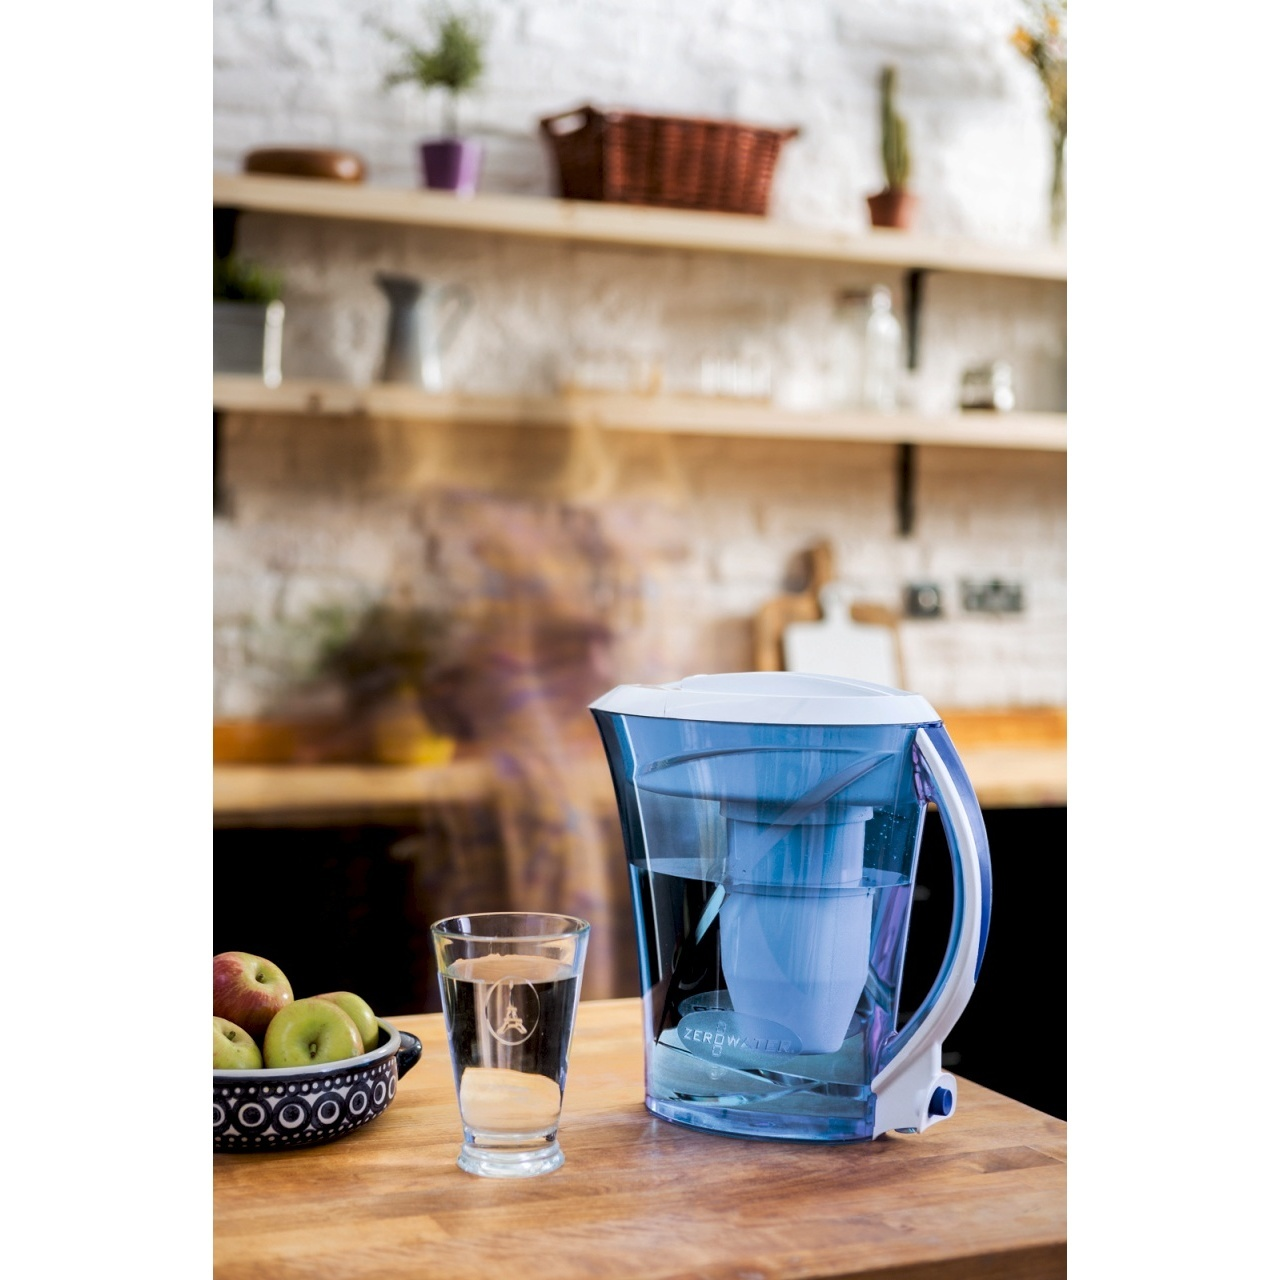 Light blue water filter jug on a table with glass kitchen background